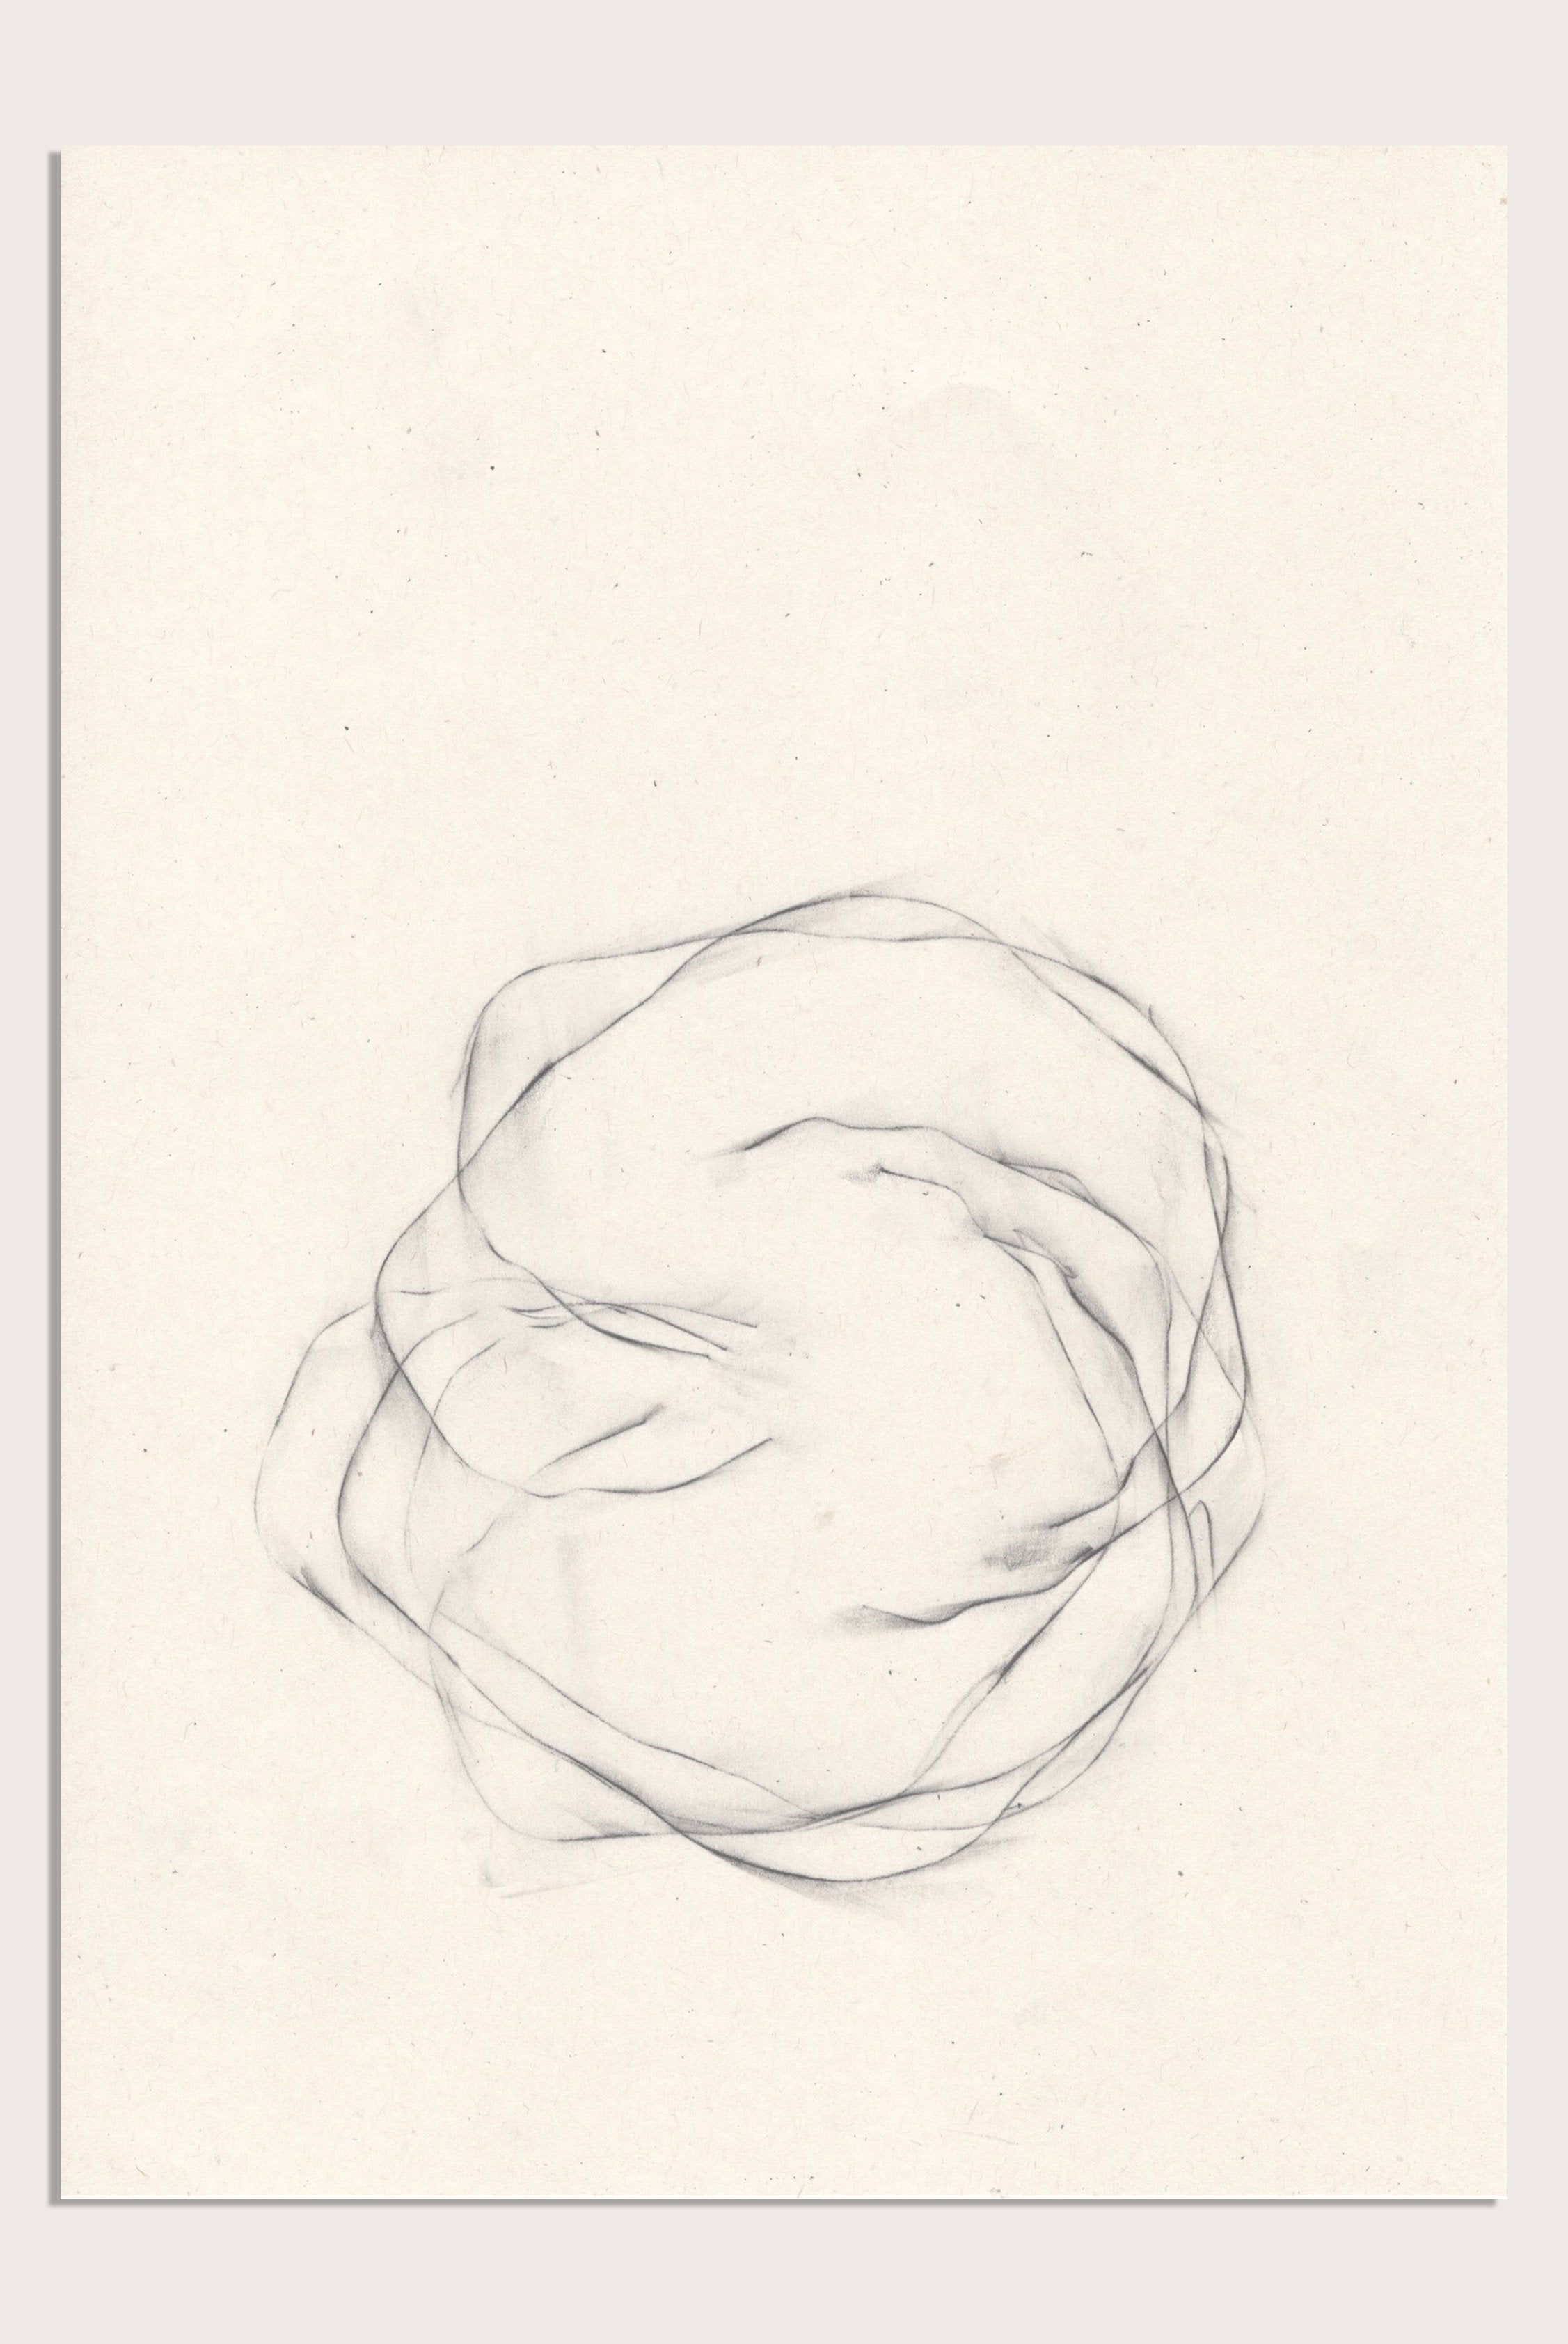 'Unsettled II', a minimalist drawing by contemporary, woman artist, Kayleigh Harris